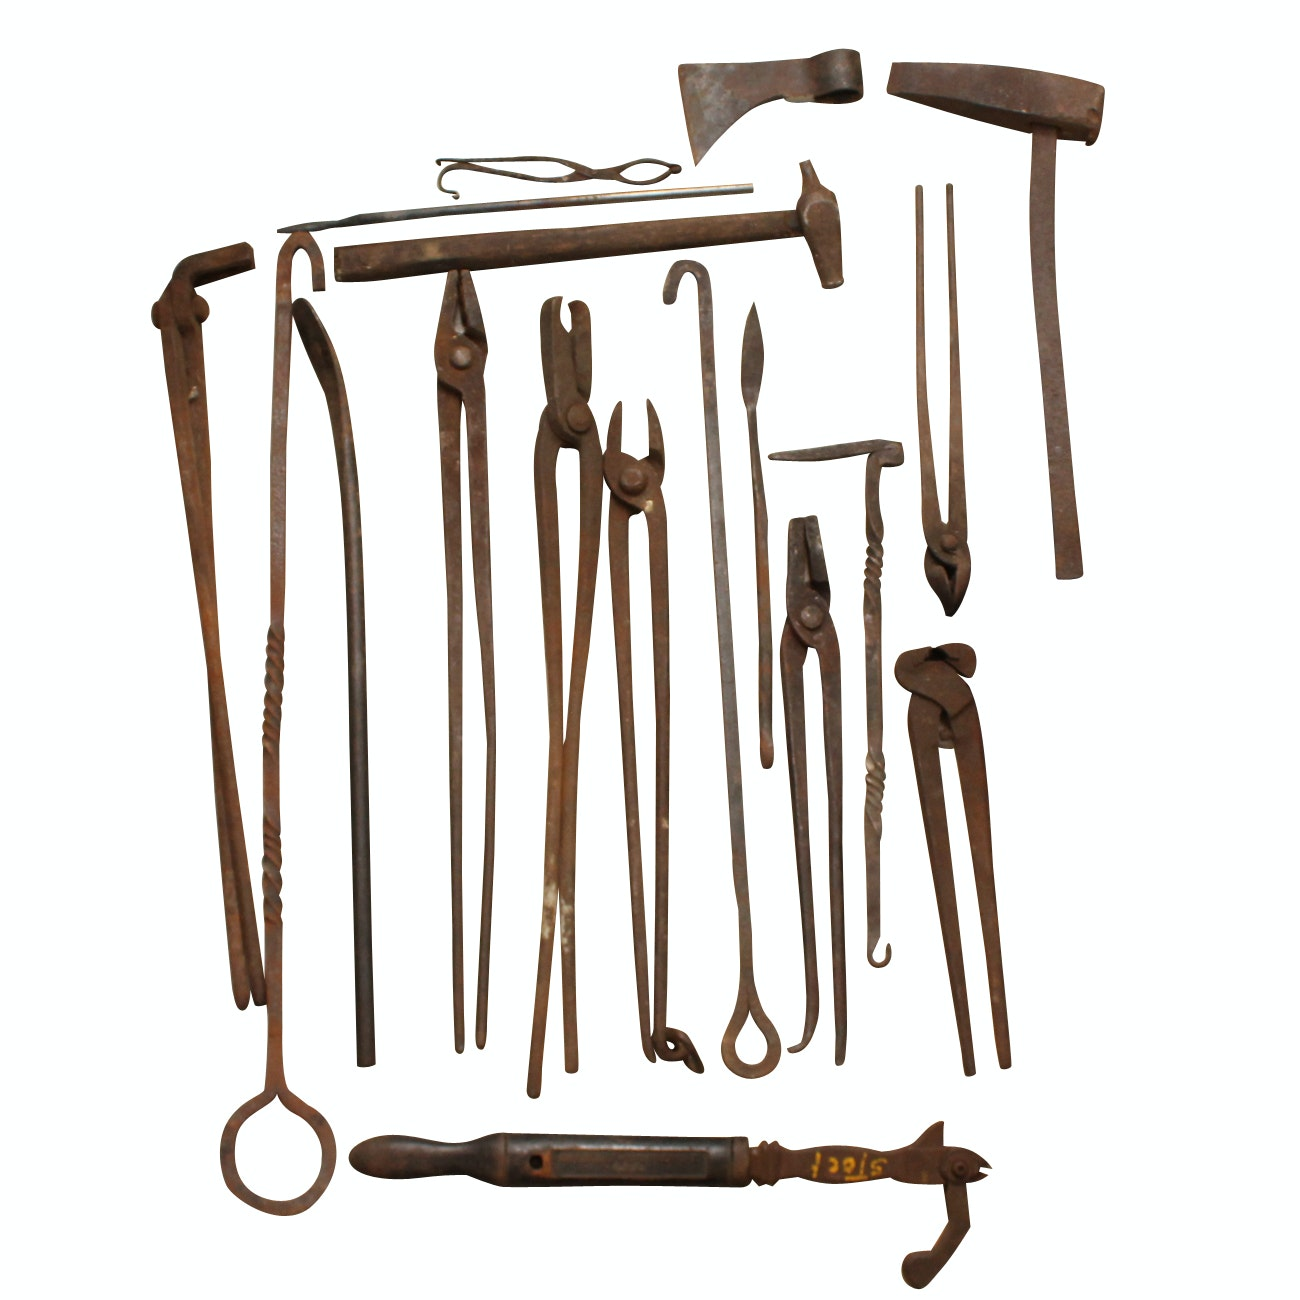 Collection of Antique Blacksmith Tools